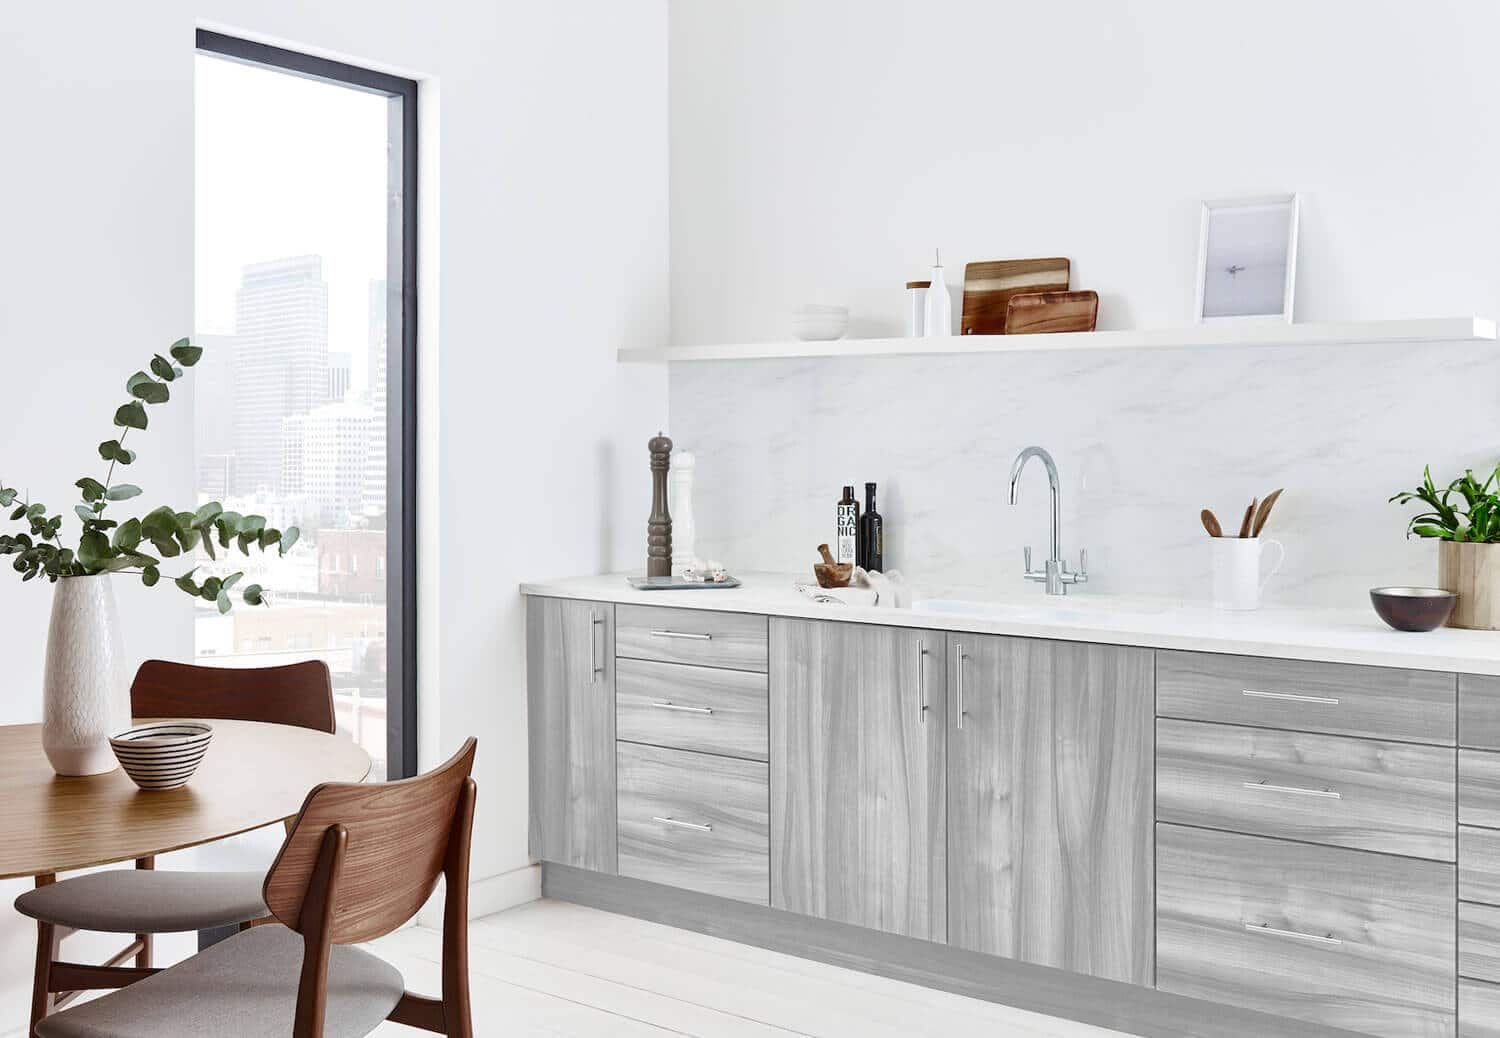 Scandi kitchen with a marble looking splashback in White Carrara colour from Alusplash and wooden dining table